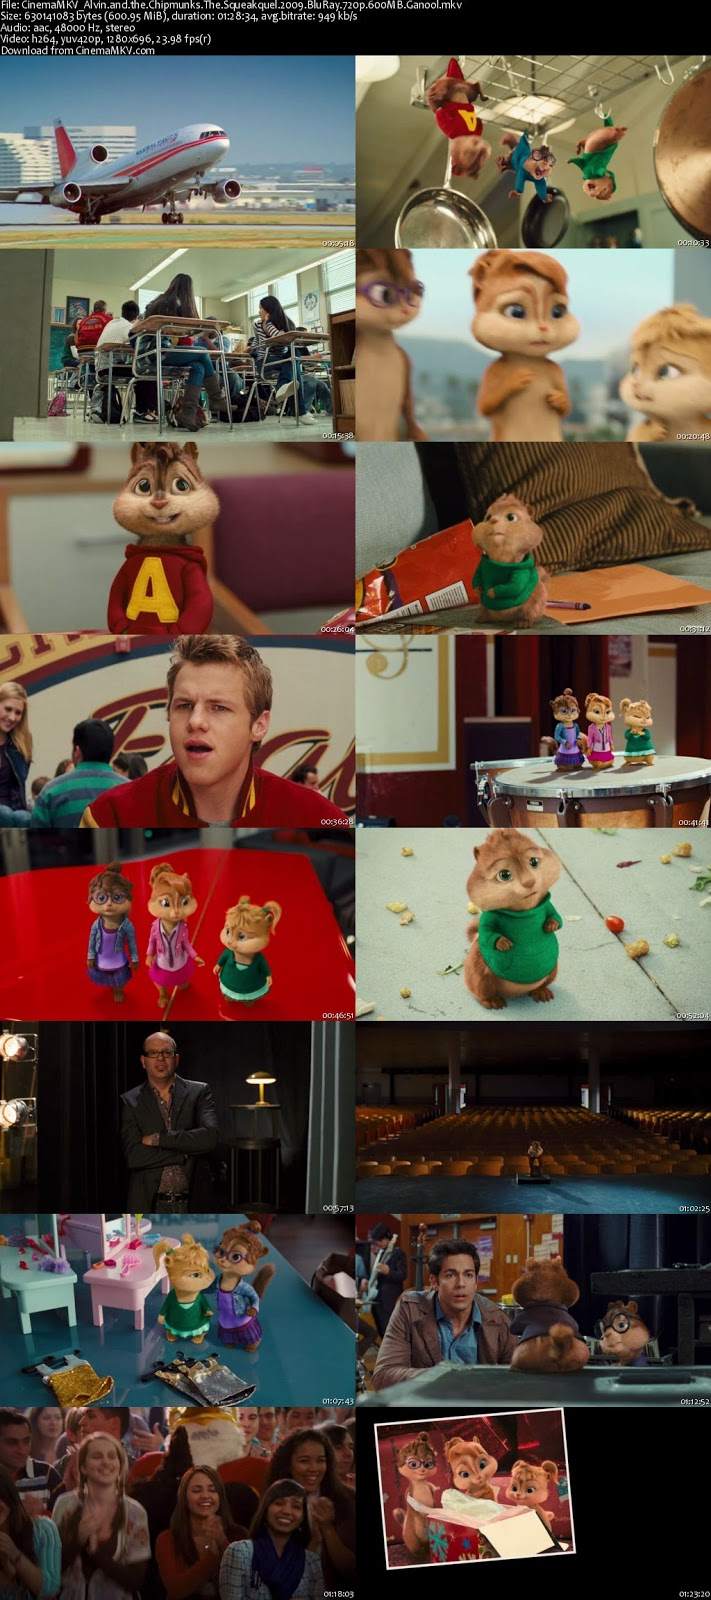 alvin and the chipmunks the squeakquel 2009 cinemamkv